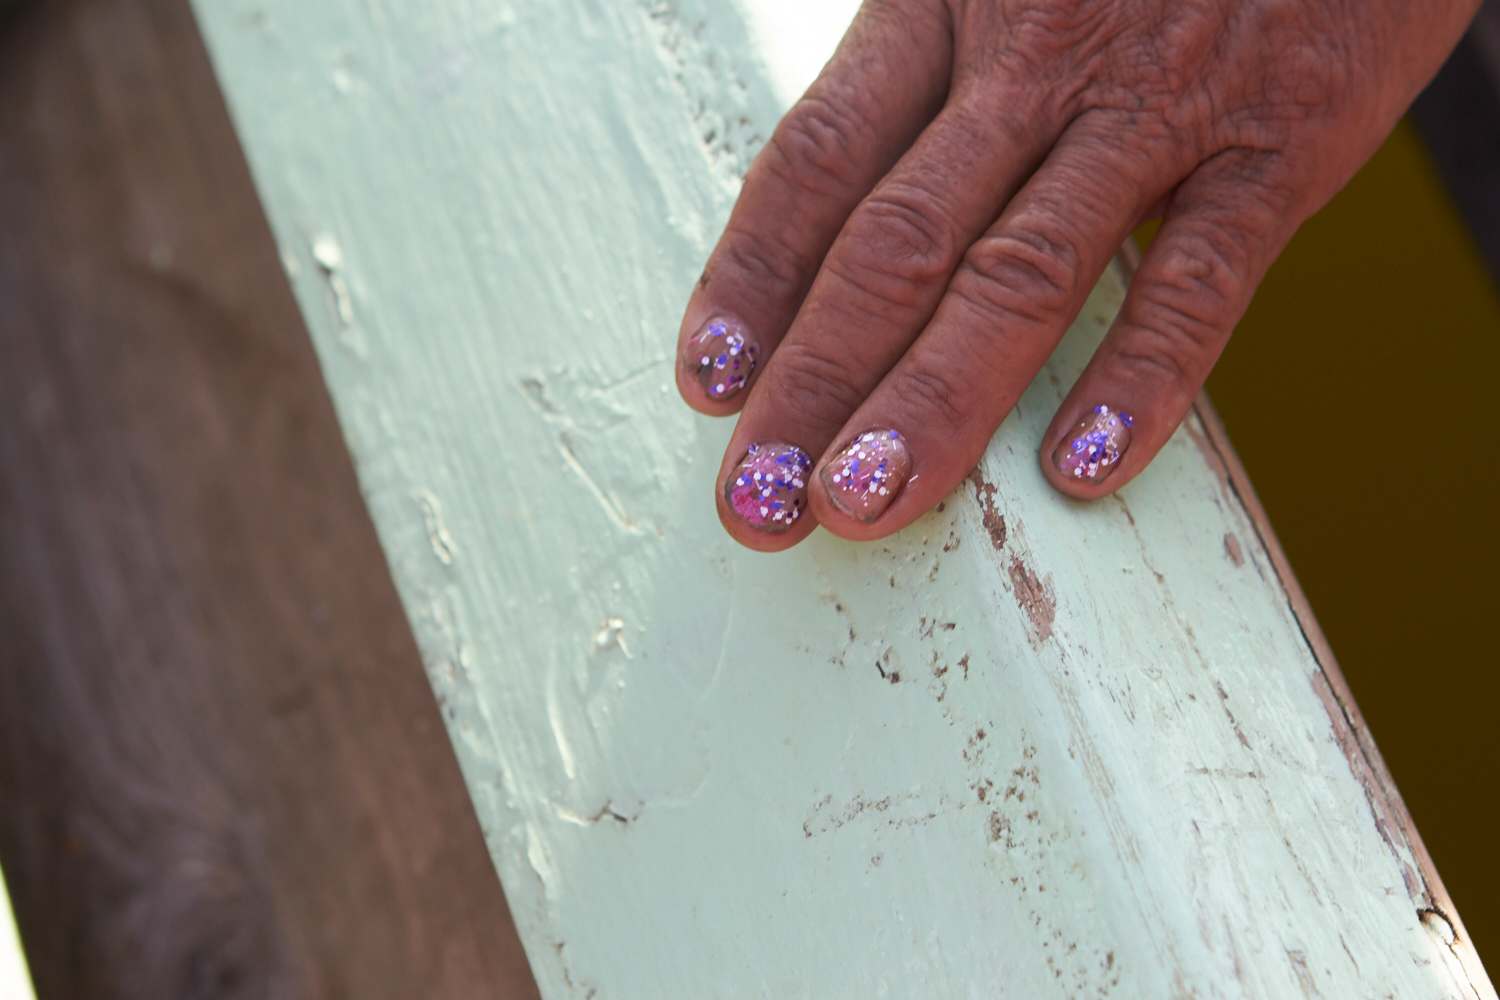 Statements. - Wearing nail varnish is common among men